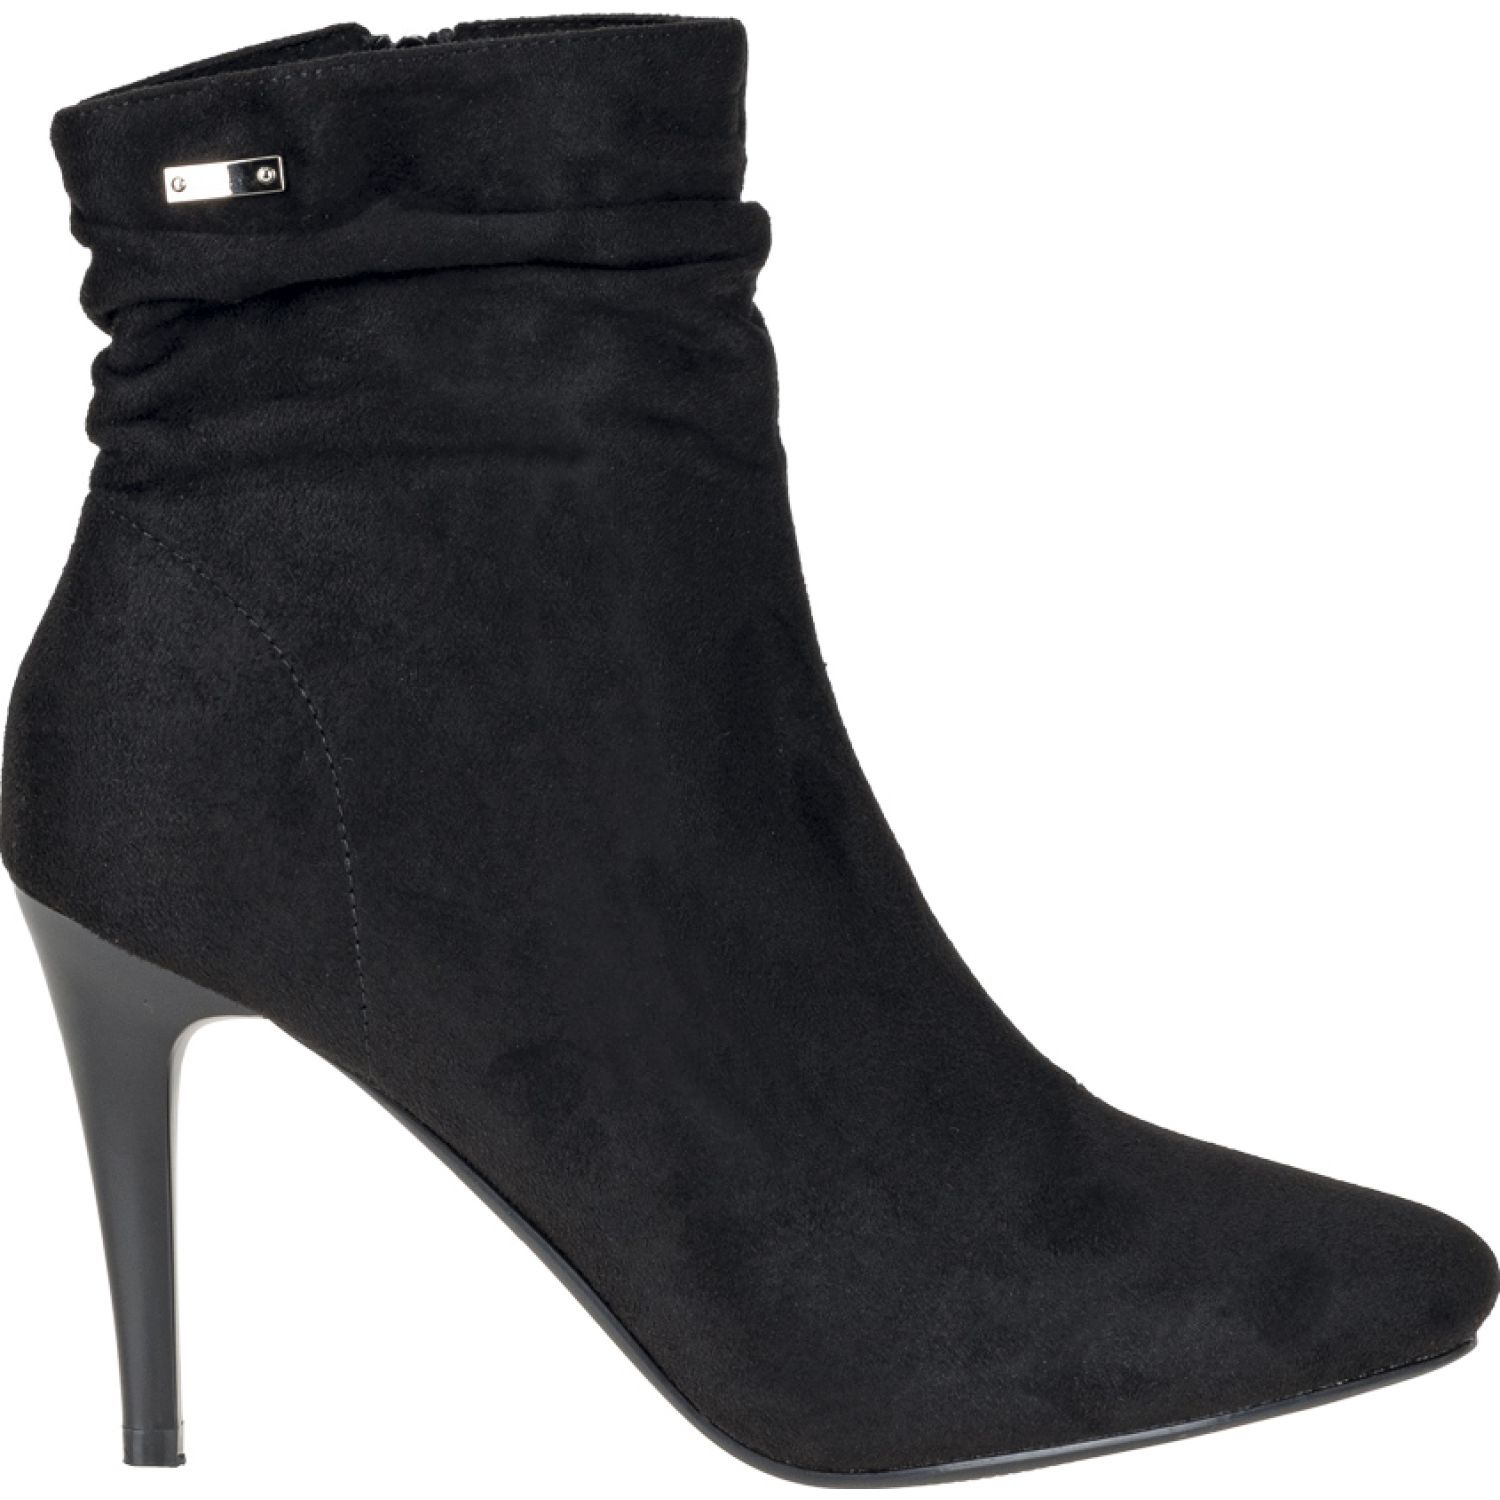 FOOTLOOSE Fch-Hs007i20 NEGRO Botines